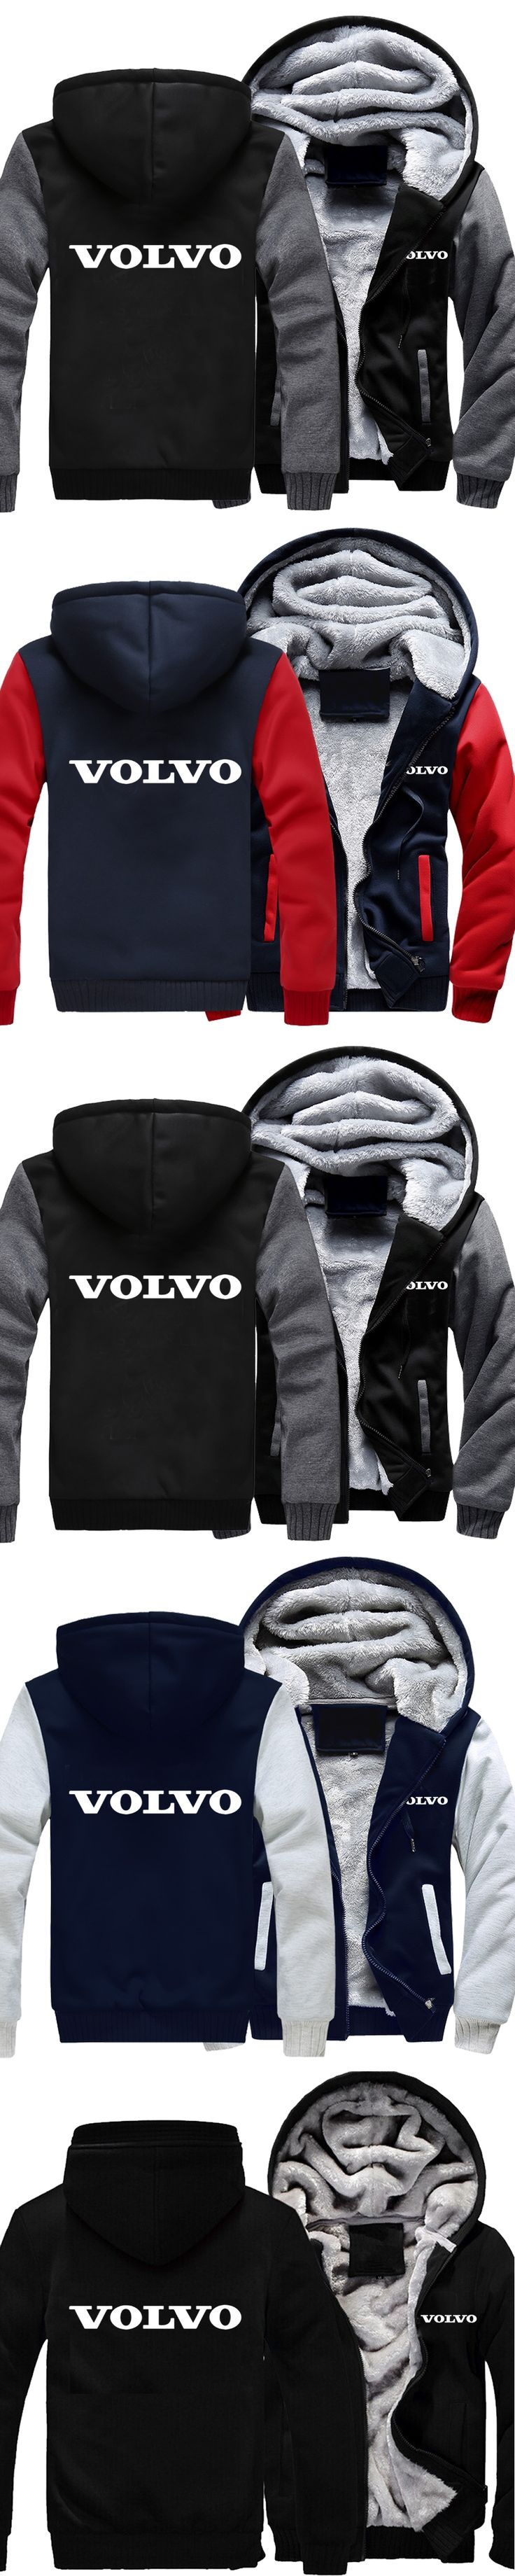 Men Women Volvo Car Logo Zipper Sweatshirts Velvet Wall Warm Thicken Coat Fleece Hooded Cardigan Hoodies Casual Cotton Jacket